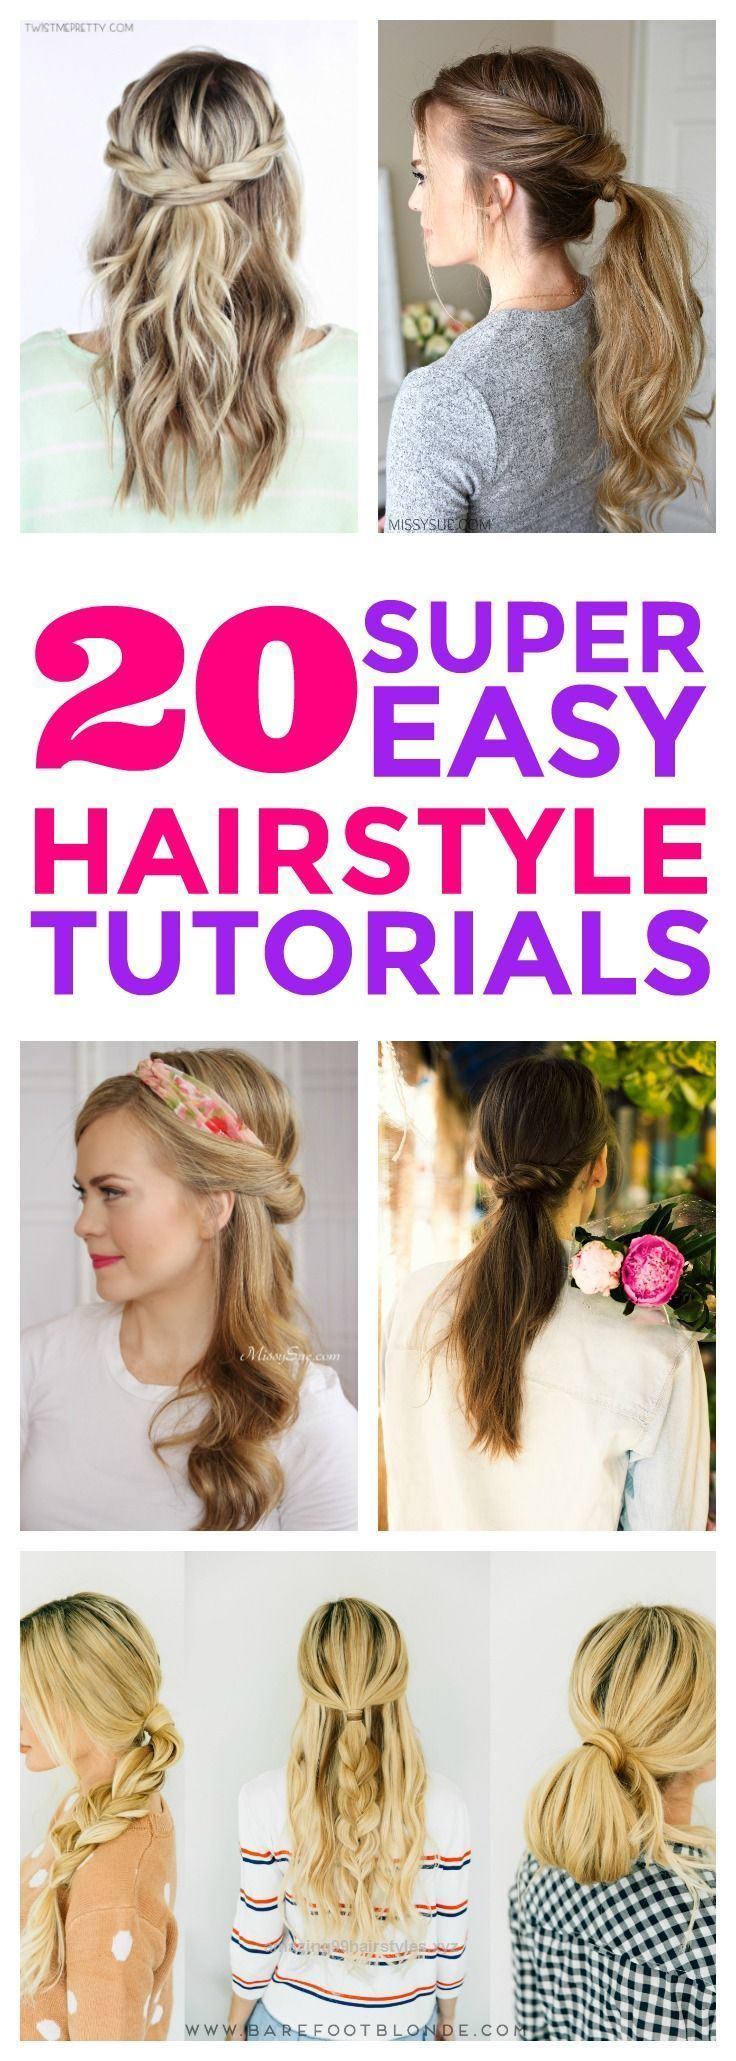 These easy hairstyles are so cute ium so happy i found these quick